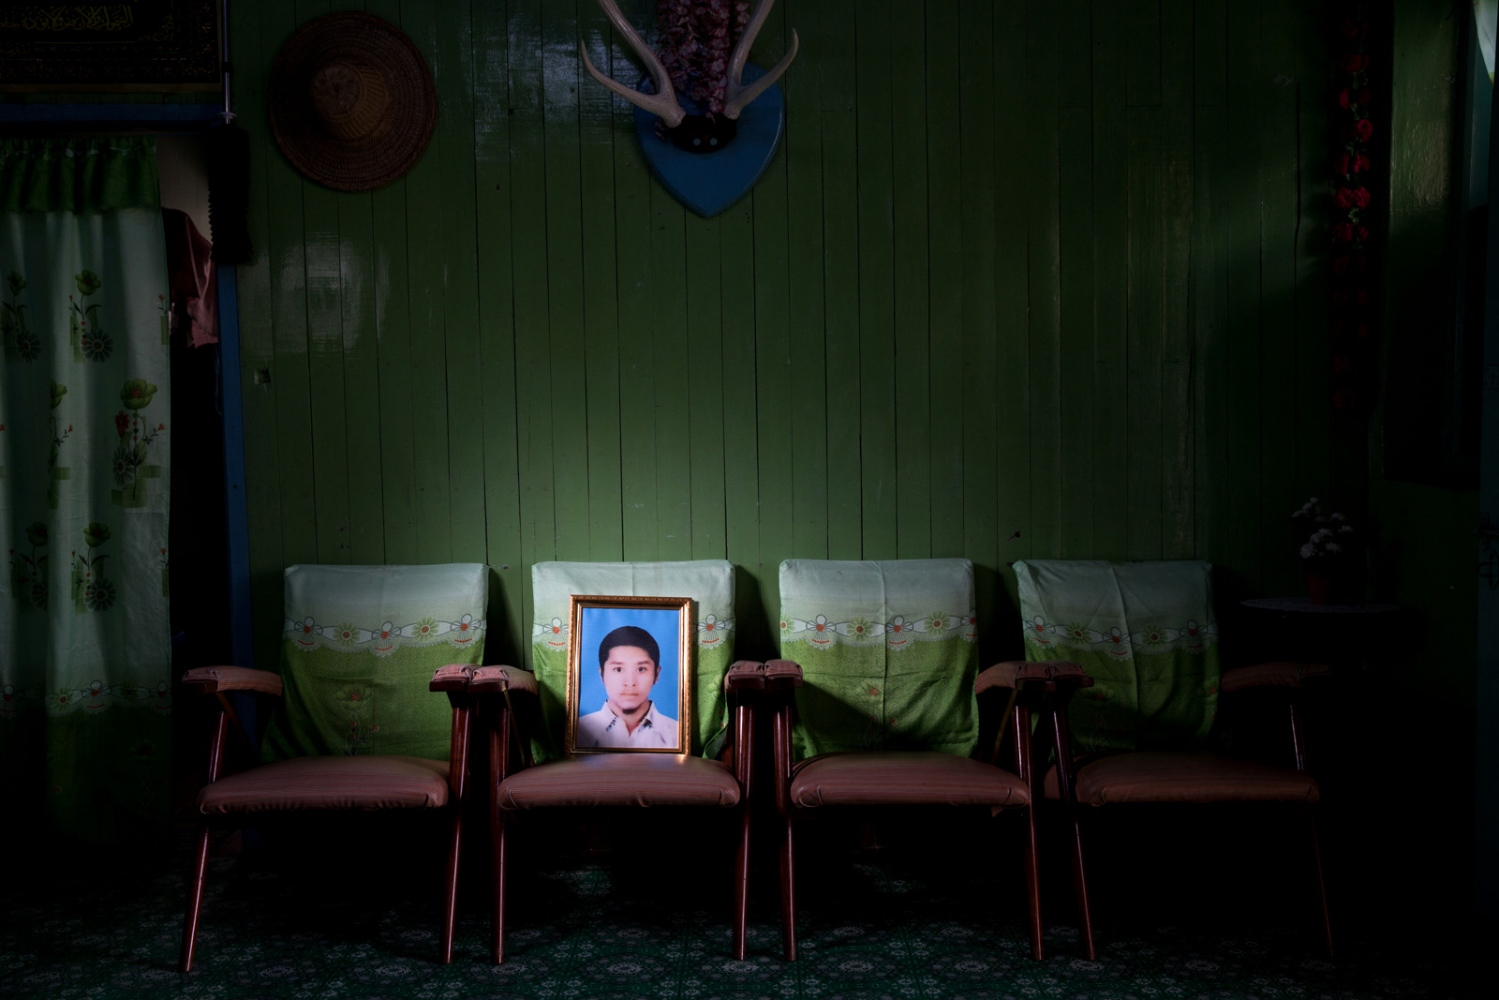 A portrait of Thant Zin Htwe, 25, in his families house. They were too frightened to be pictured in the picture for fear of retribution. Myanmar military intelligence arrested Thant Zin Htwe en route to a wedding in Kunhein, Shan State on August 4, 2014. On January 12, 2015, the Taunggyi District Court sentenced him in a trial that failed to meet fair trial standards to 14 years' imprisonment with hard labor under the sections 5(J) and 5(L) of the 1950 Emergency Provisions Act. In October 2016, the Myanmar government repealed the notoriously controversial 1950 Emergency Provisions Act, yet Thant Zin Htwe remains detained in Myaung Mya prison under the now defunct Act.""